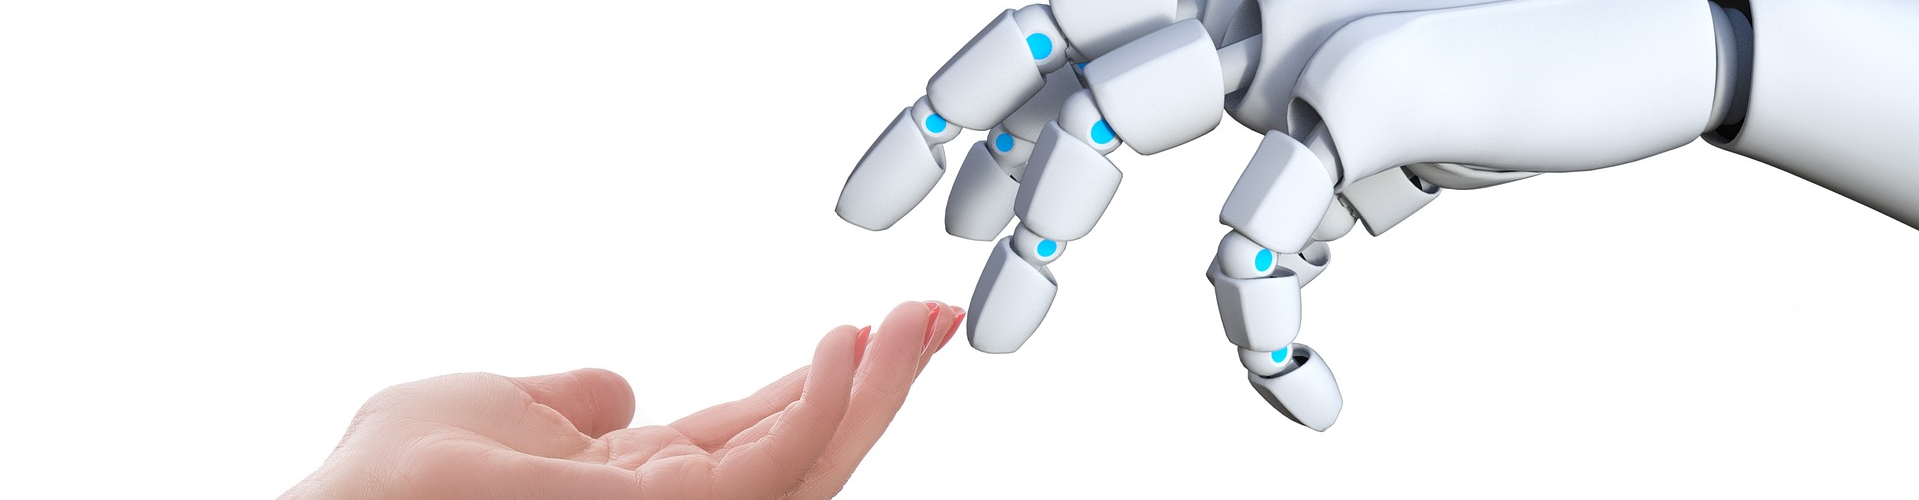 Robots and Human Hands